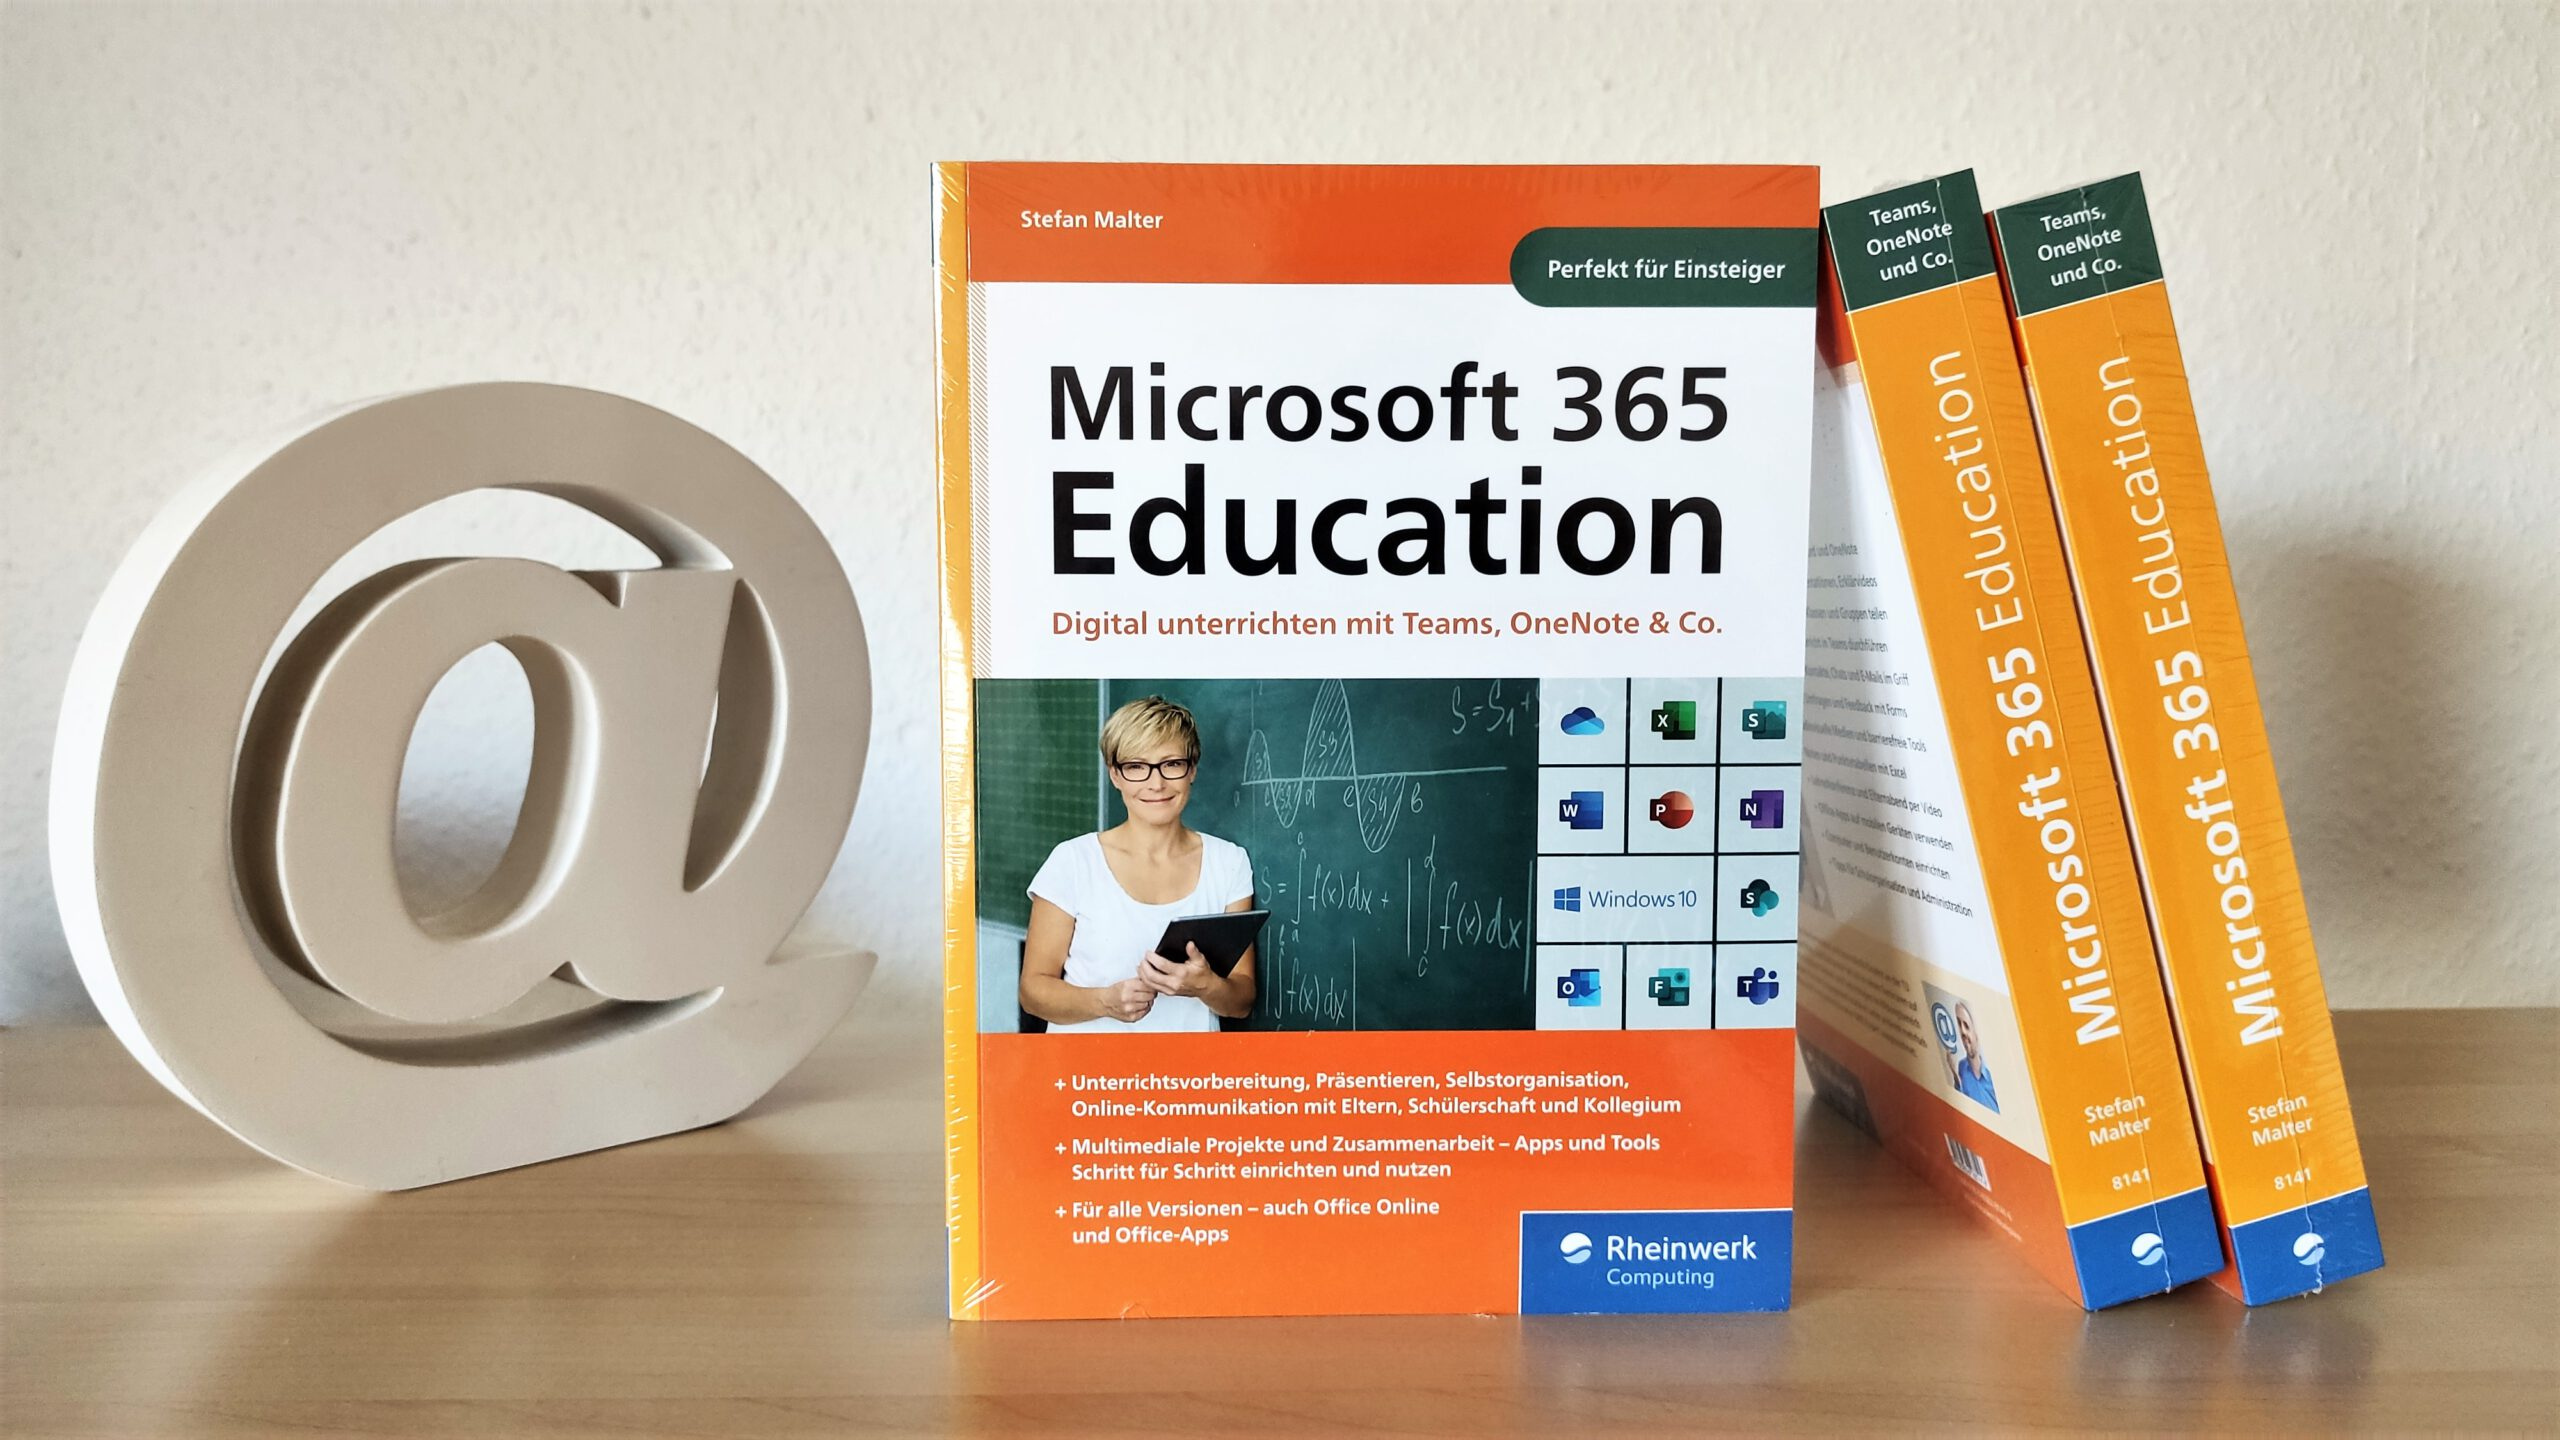 Microsoft 365 Education - Buch im Handel